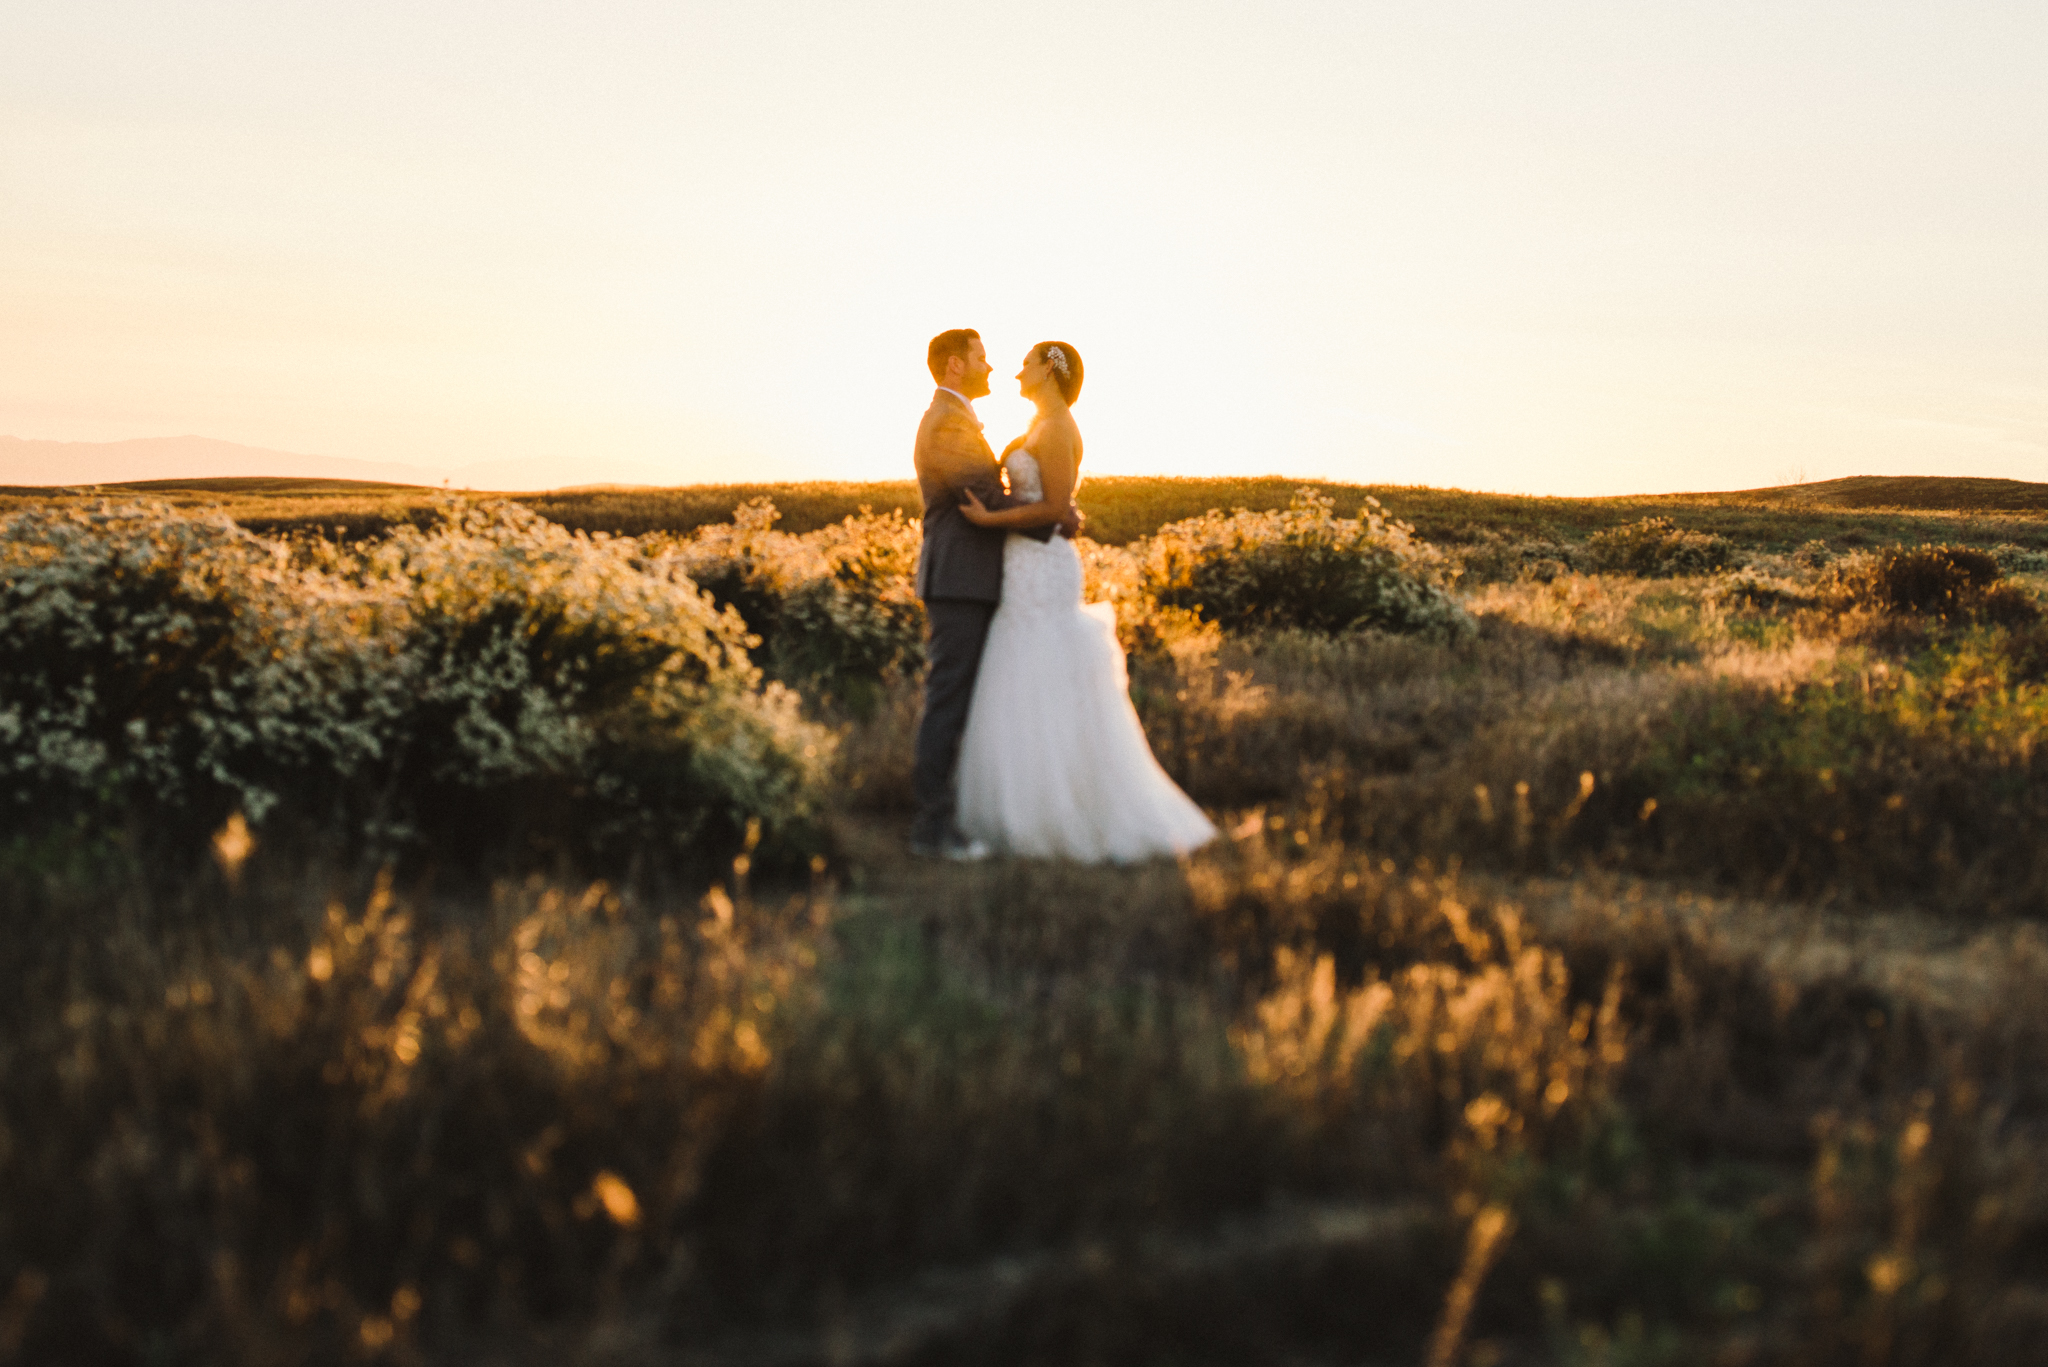 Isaiah & Taylor Photography - Destination Photographers - Temecula Winery Sunset Wedding-11.jpg